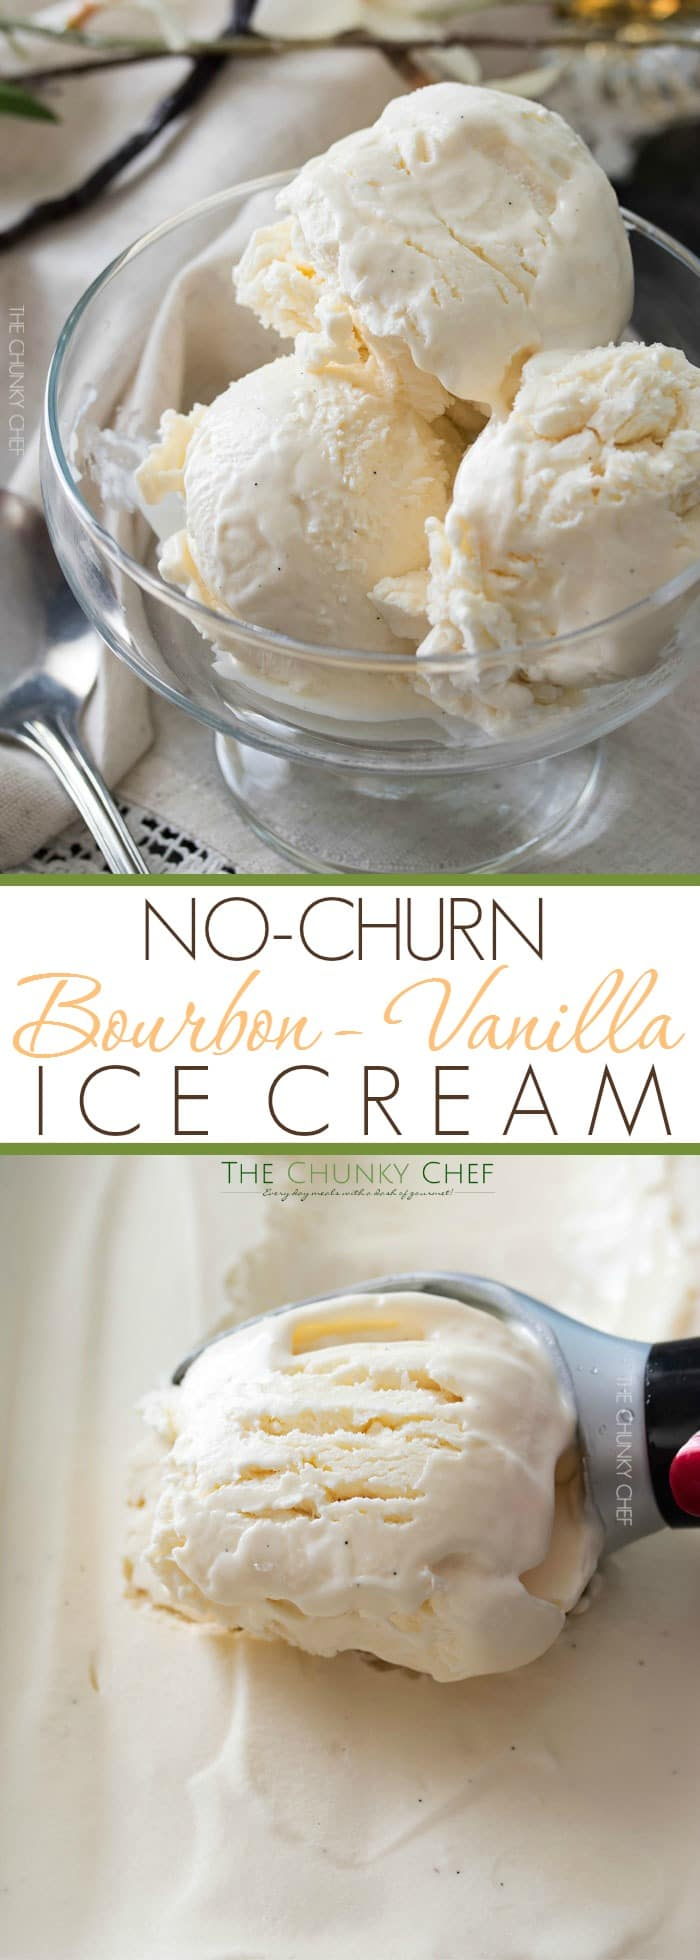 Bourbon Vanilla No Churn Ice Cream | This rich and creamy no churn ice cream is studded with flecks of vanilla bean and laced with warm Bourbon, for a tempting treat that's perfect year round! | http://thechunkychef.com